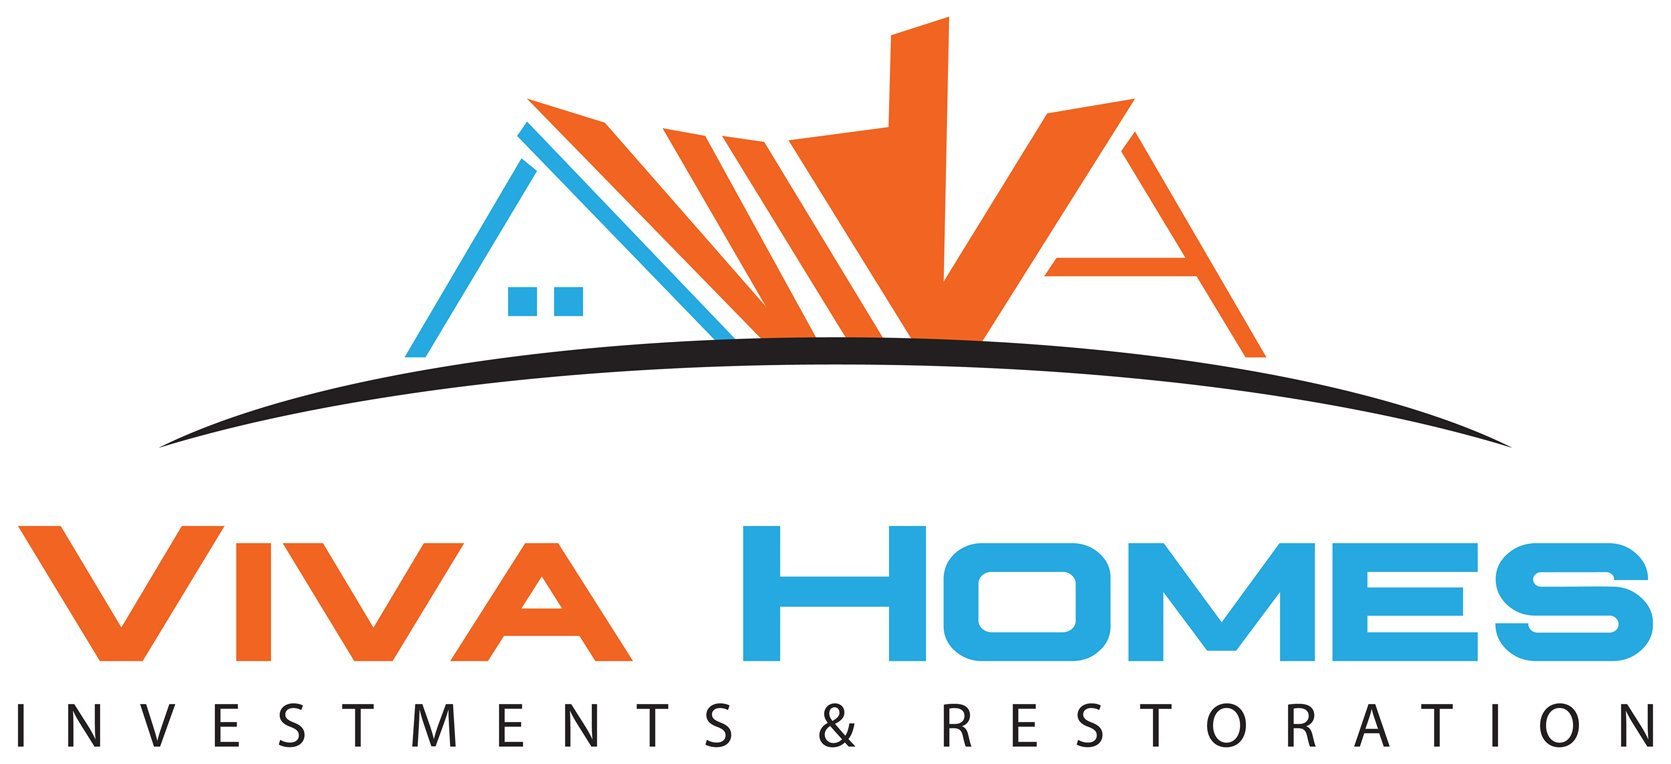 Viva Homes Investments & Restoration logo